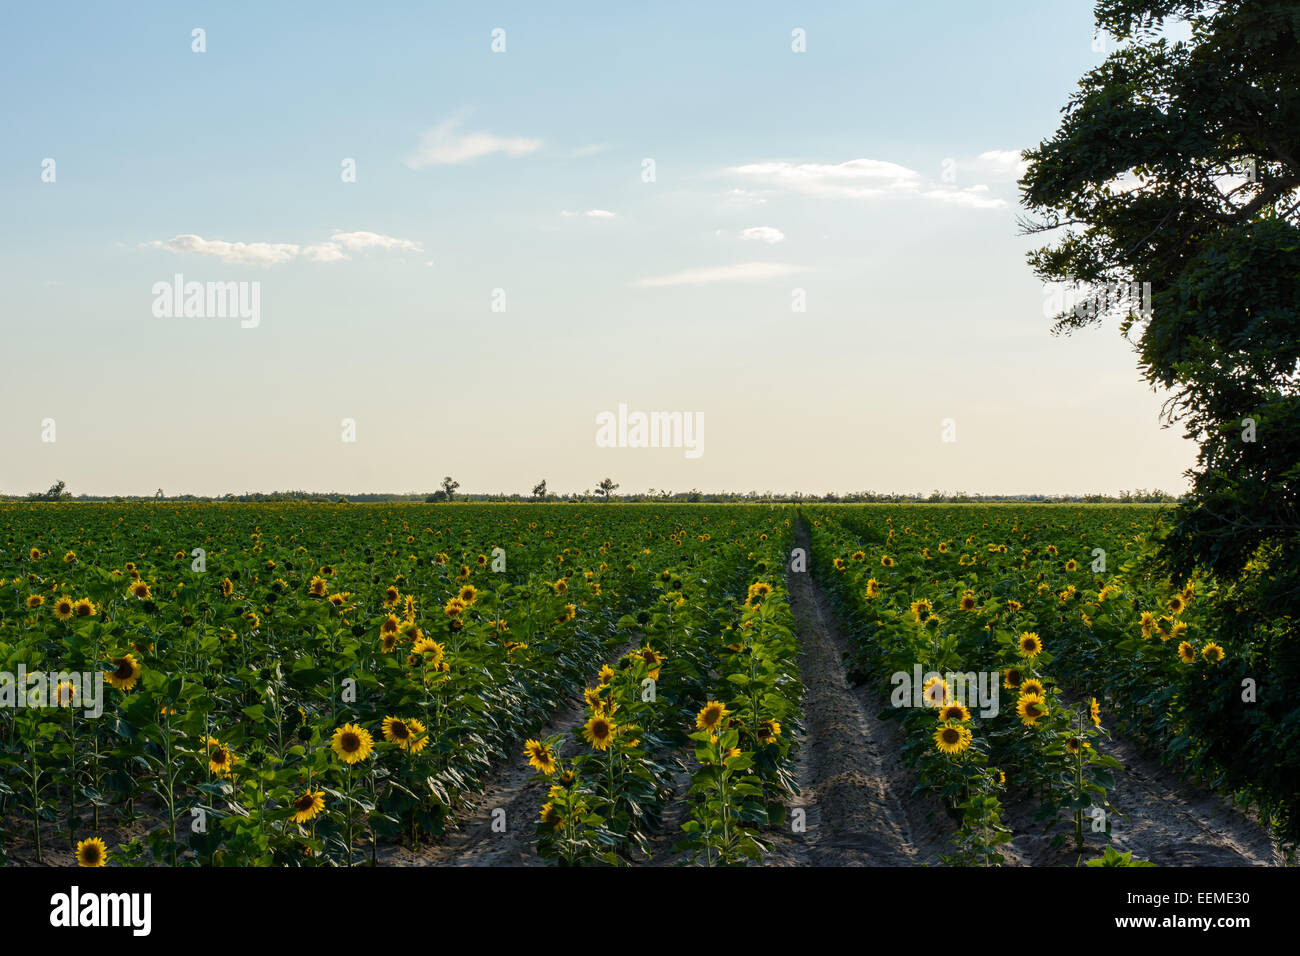 Sunflowers sea, sky, forest - Stock Image